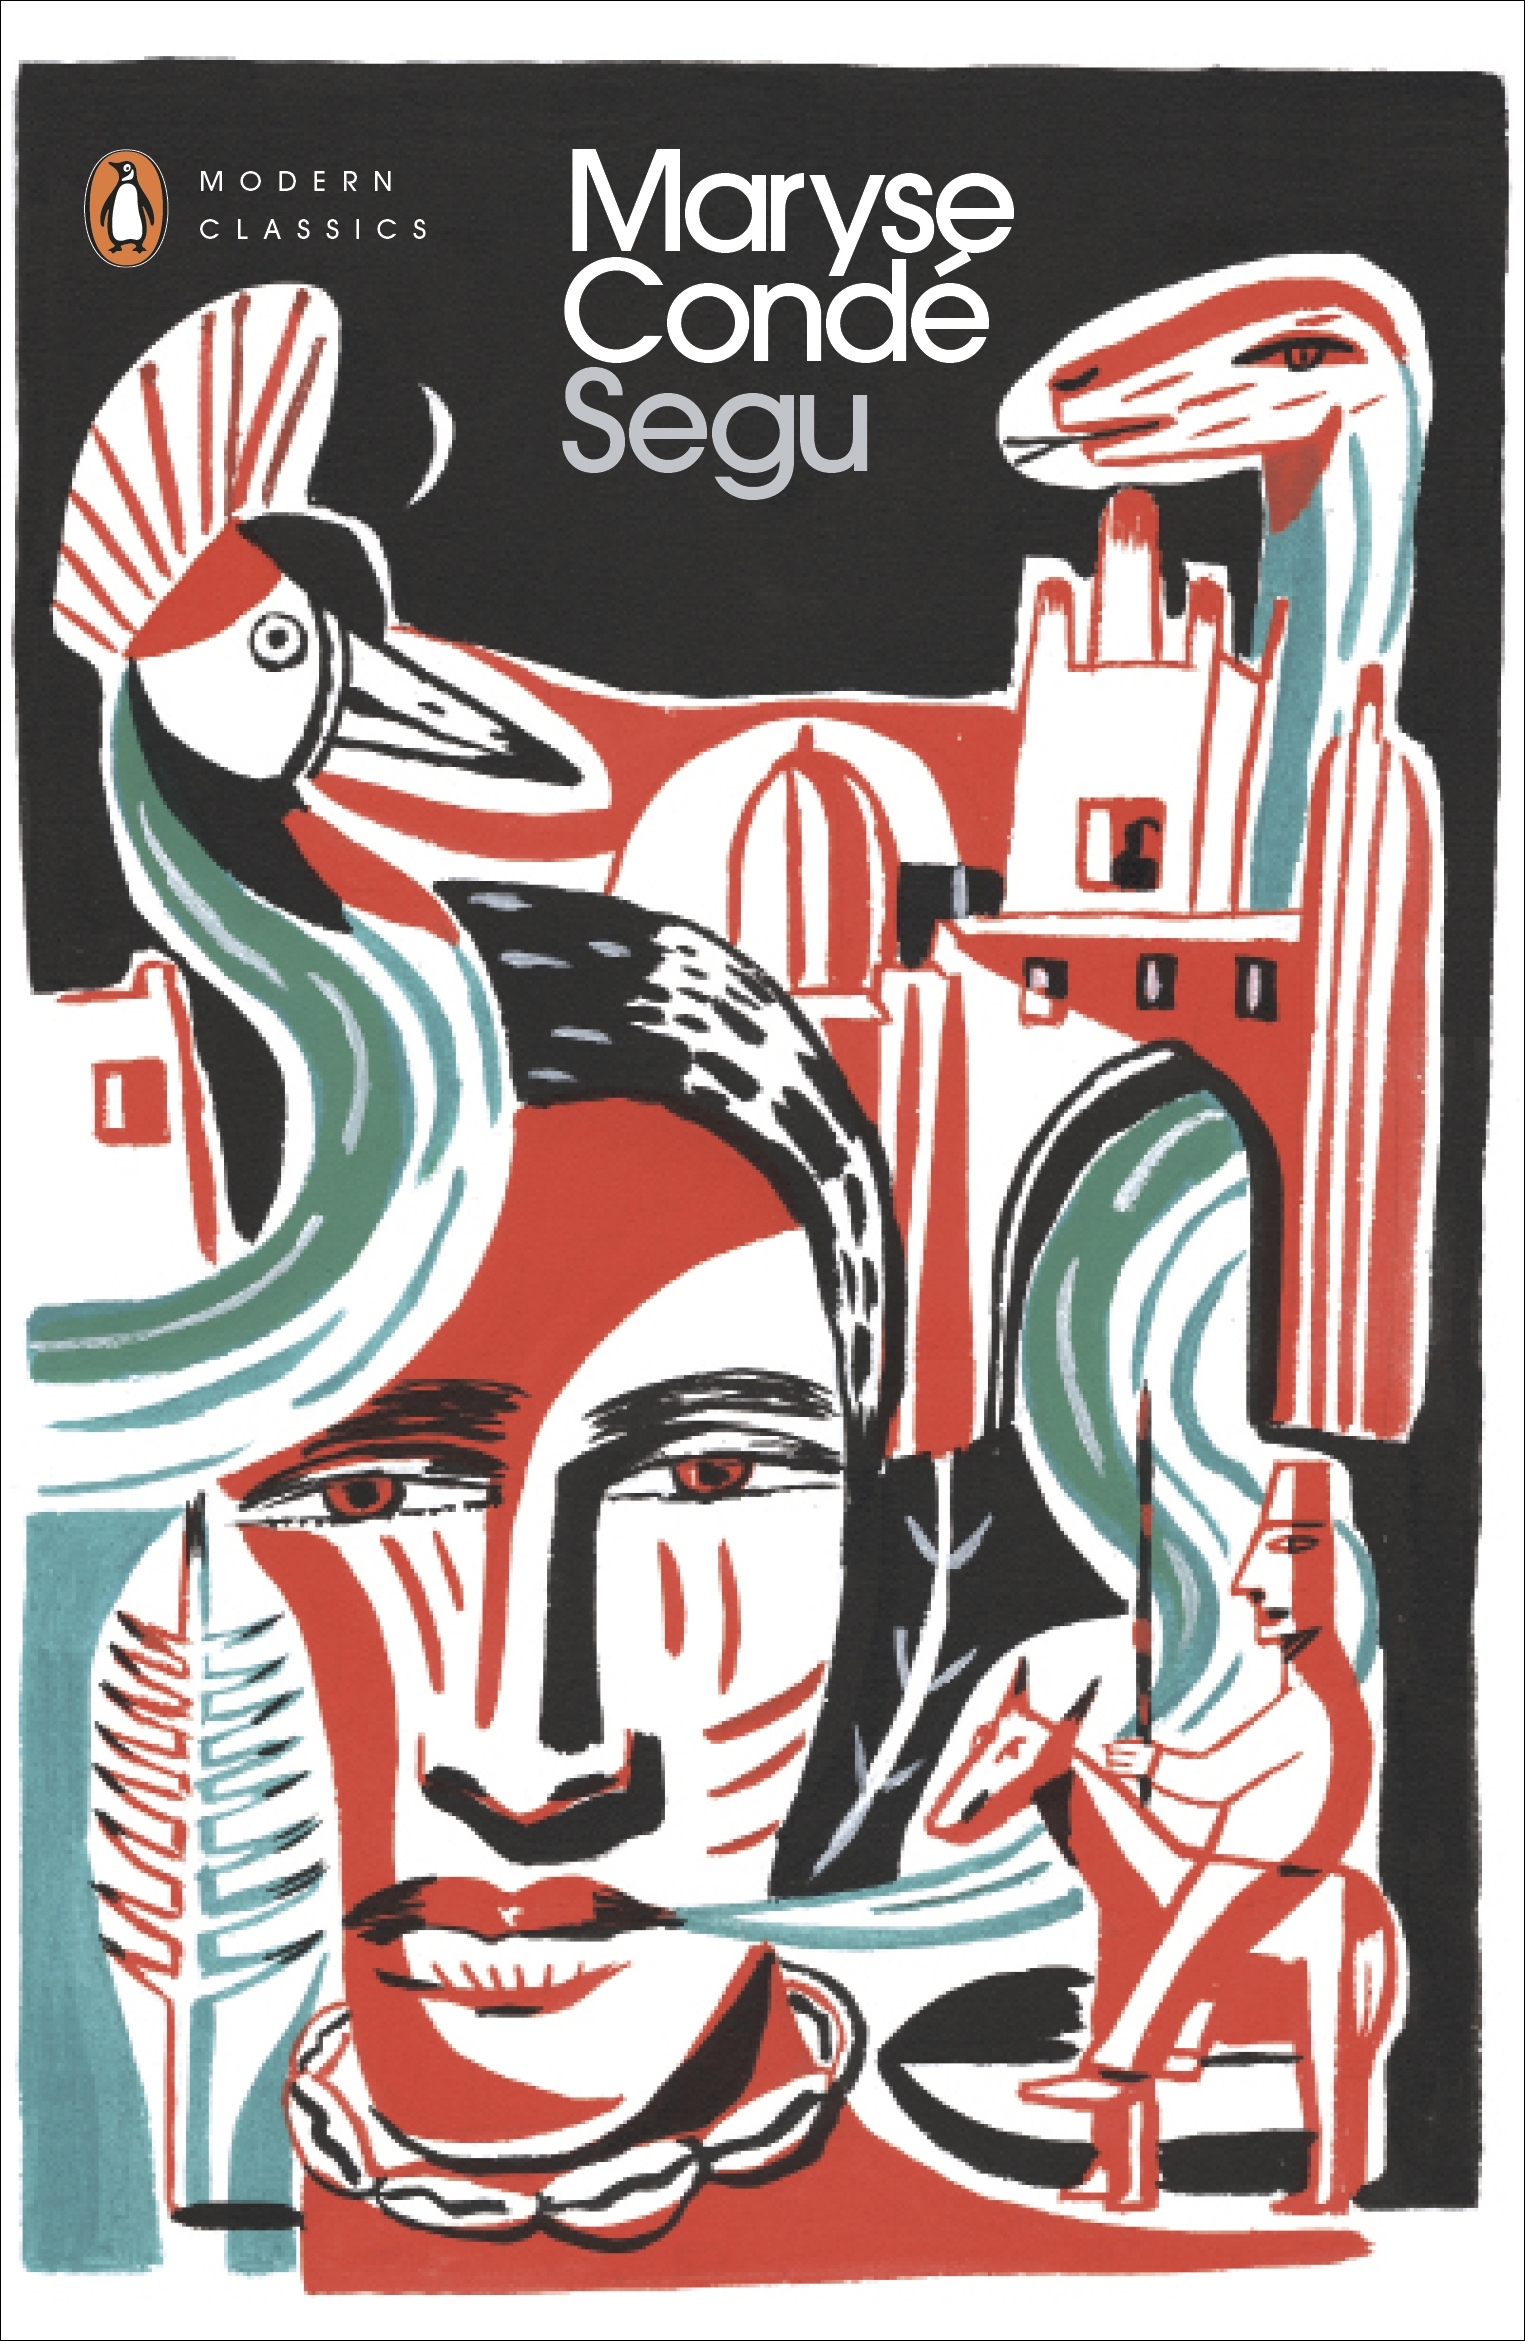 Segu by Maryse Conde